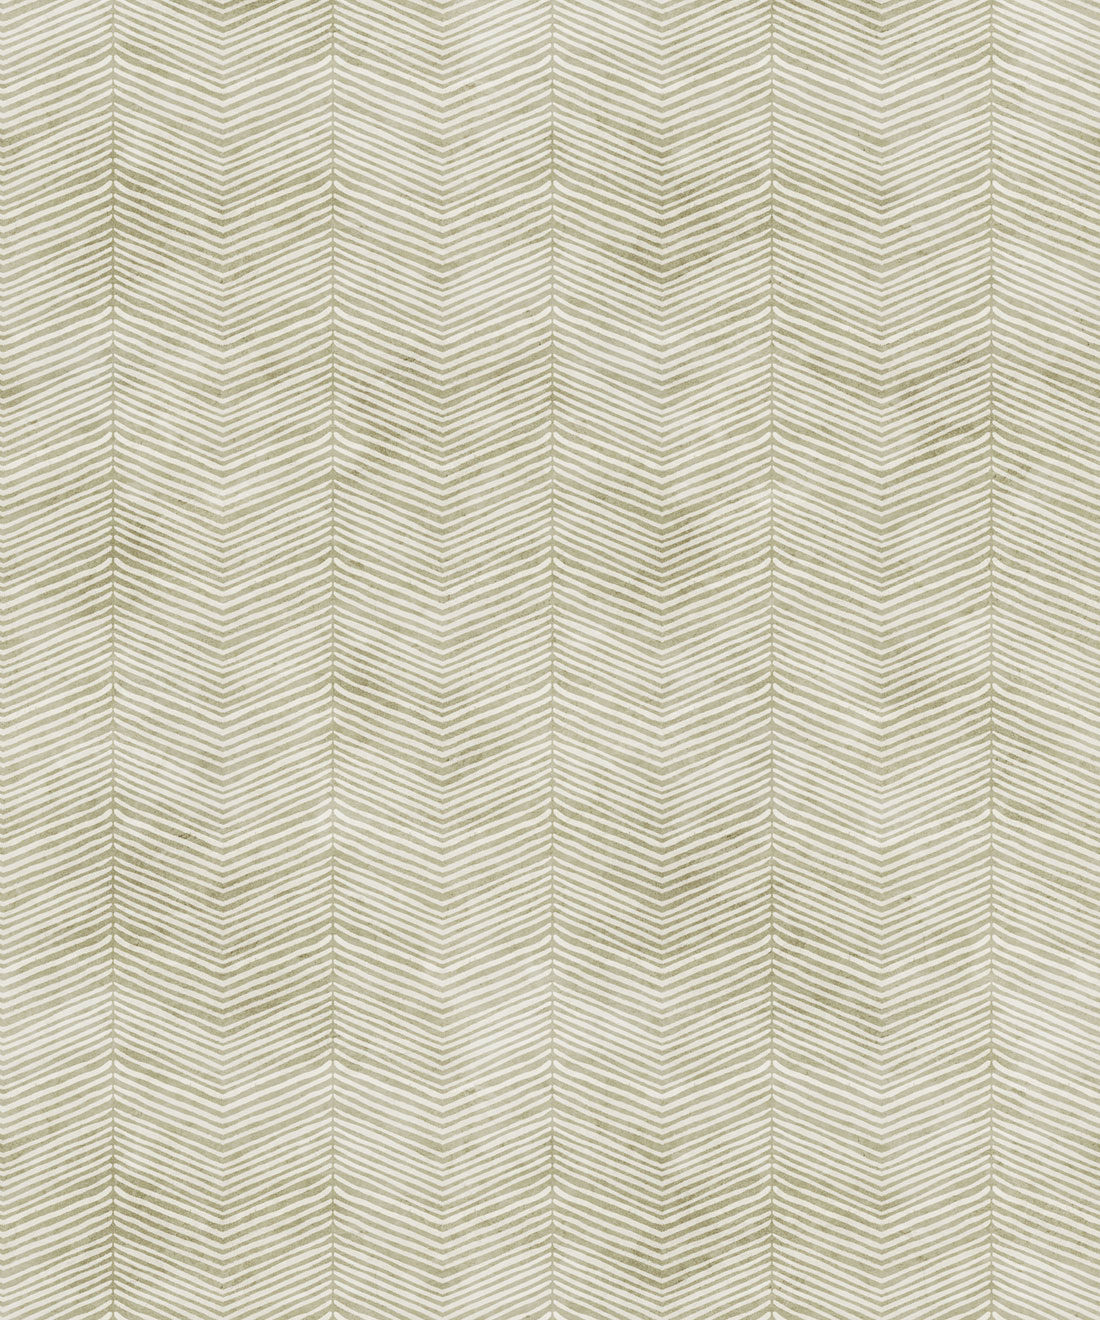 Bethany Linz - Herringbone Wallpaper